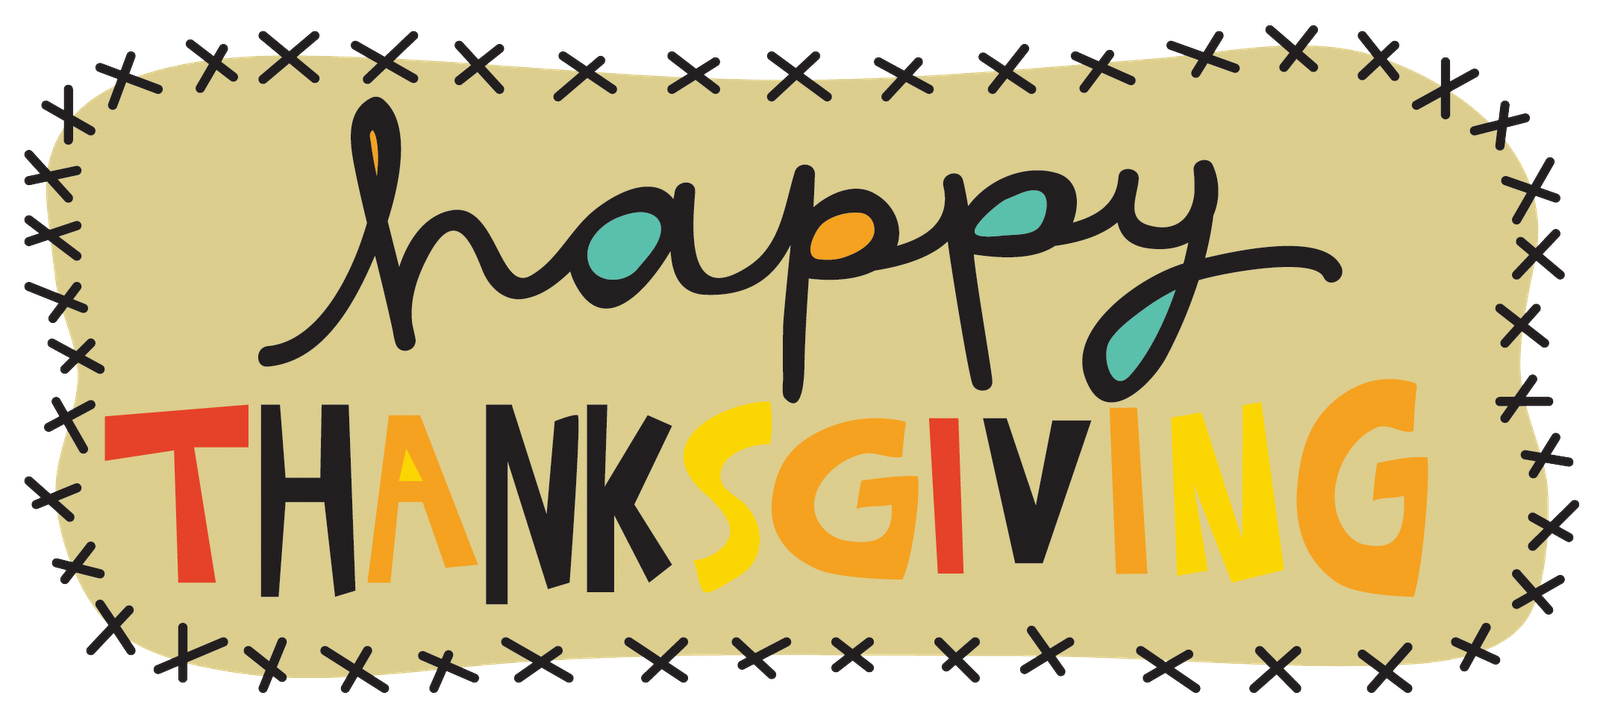 Happy thanksgiving clipart free facebook. Png stock for cover